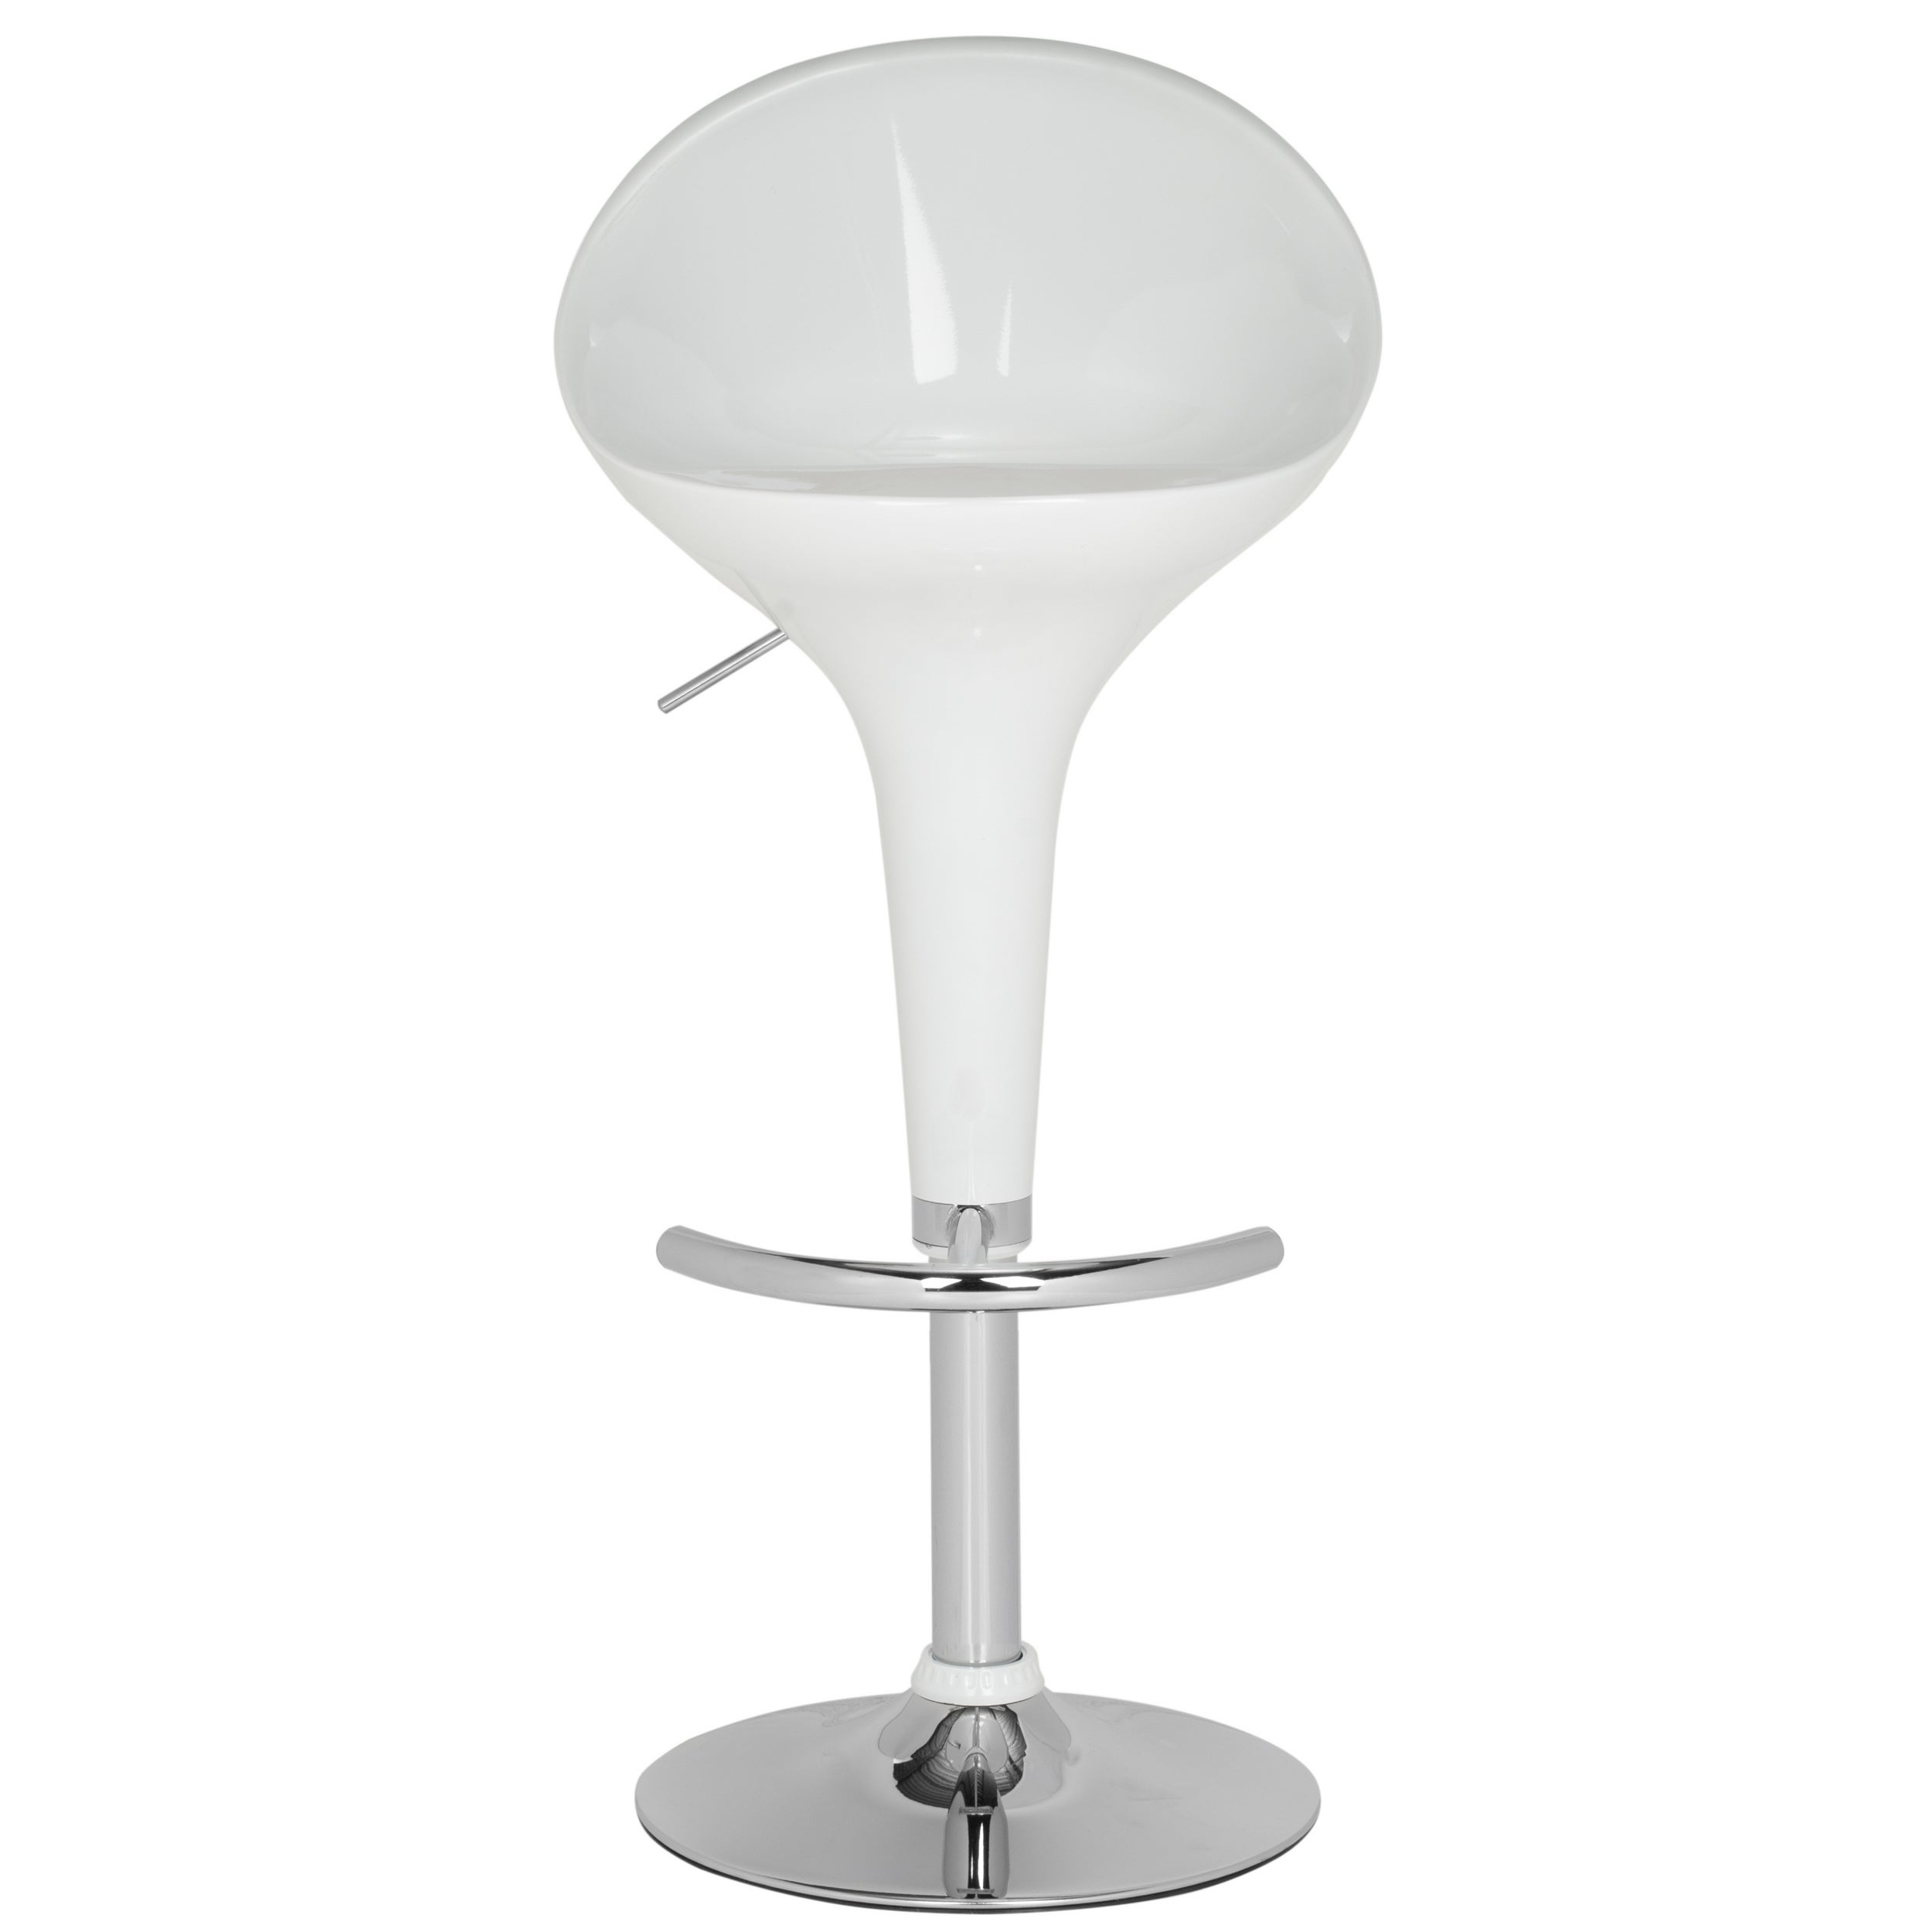 Safavieh Zorab White Adjustable 24 32 Inch Bar Stool 683726766490 Ebay